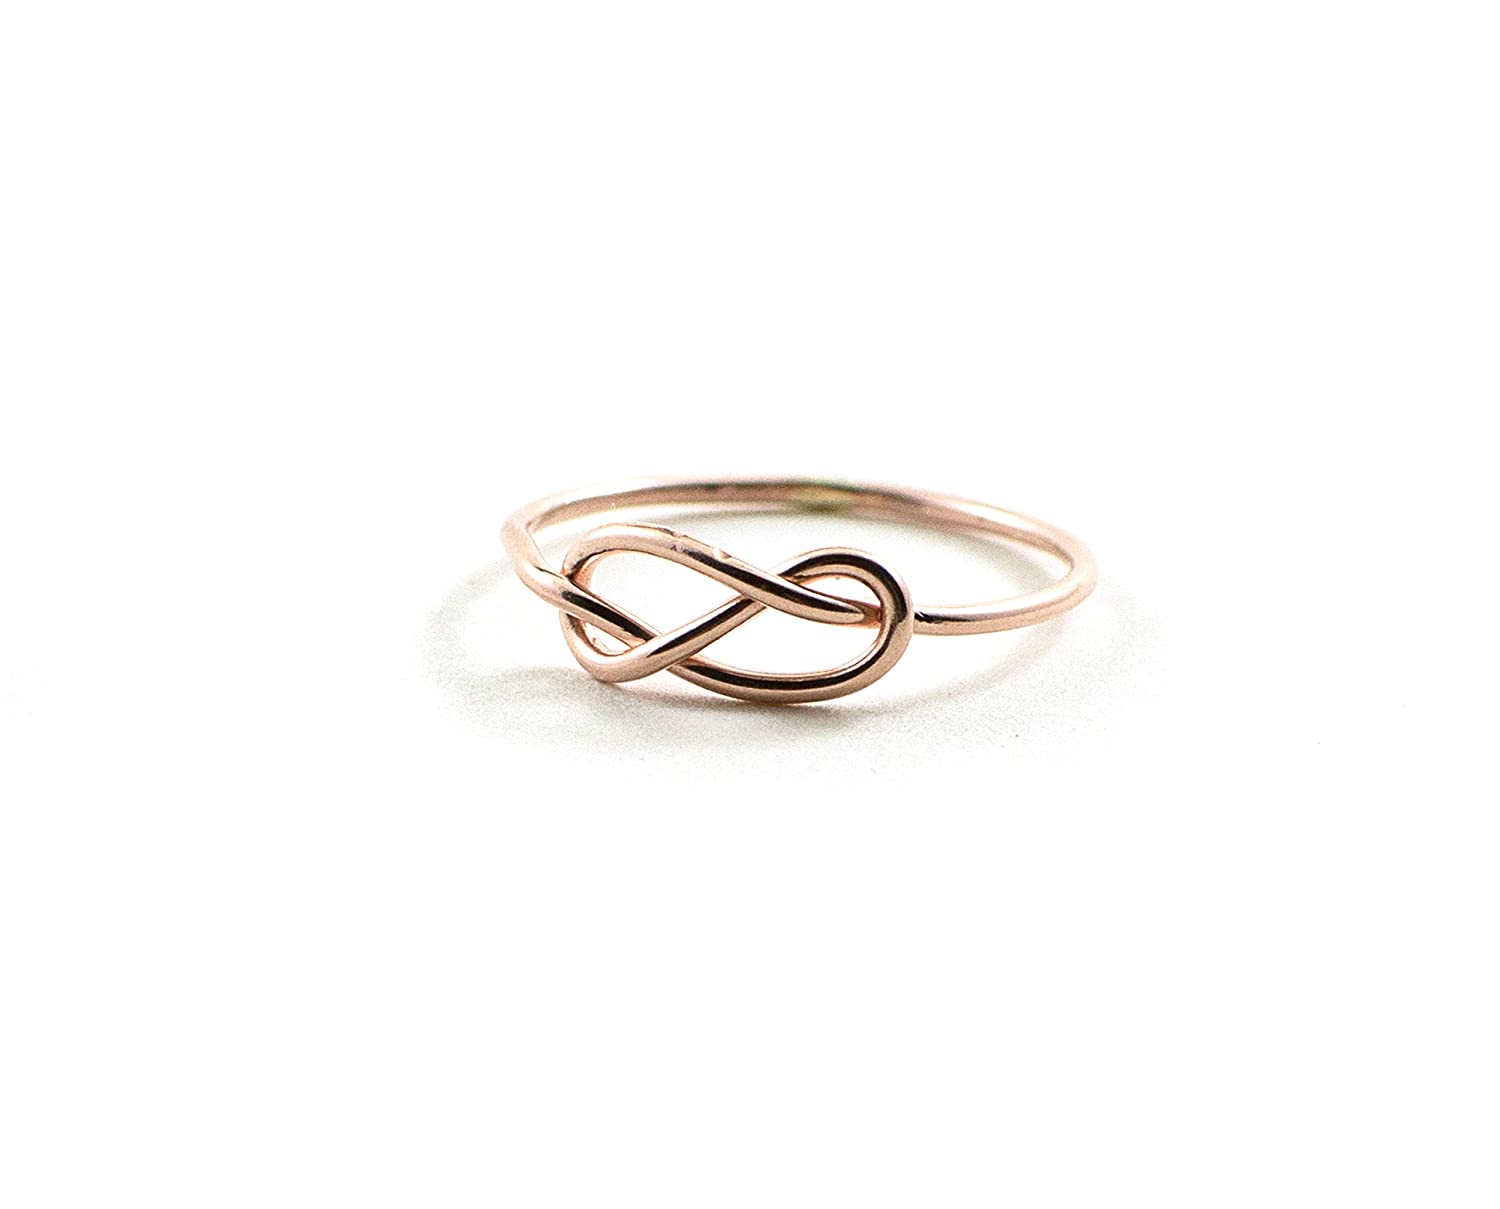 Amazon Infinity Knot Ring Love Tie The Rose Gold For Women Handmade: Handmade Wedding Bands New Hshire At Websimilar.org